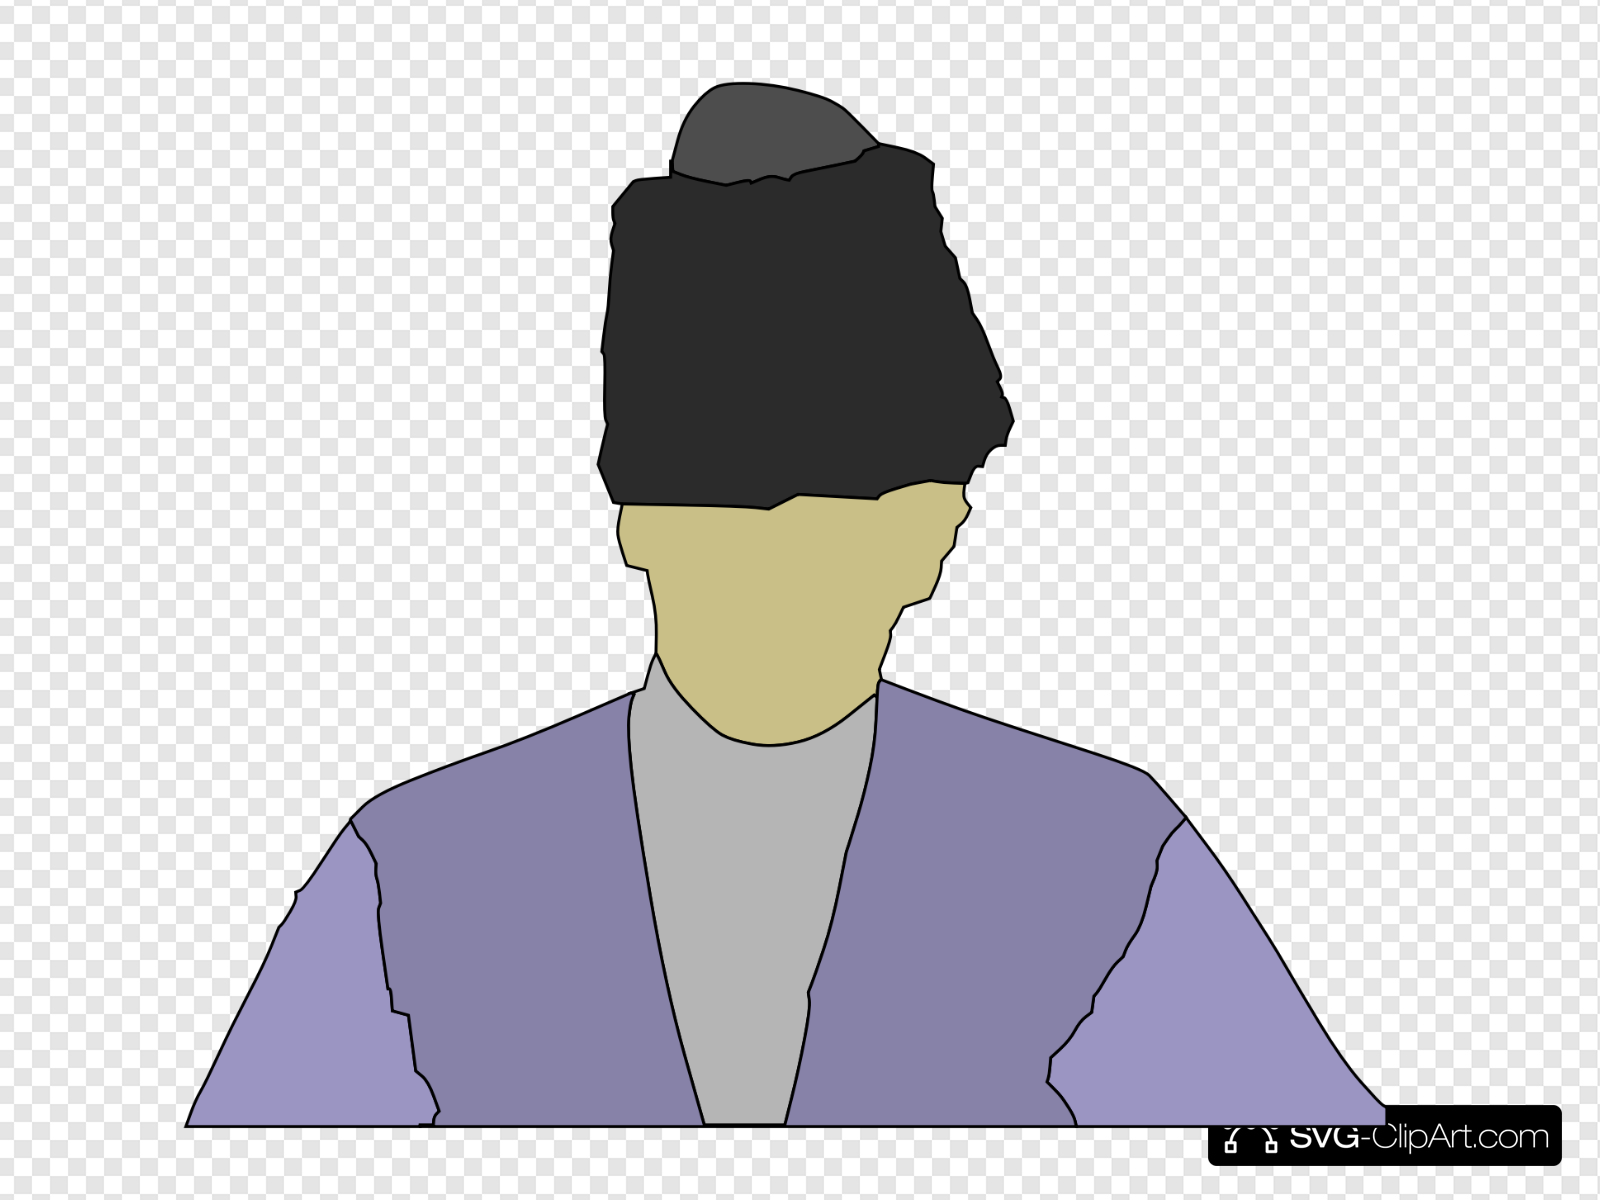 Man Wearing Russian Hat Clip art, Icon and SVG.